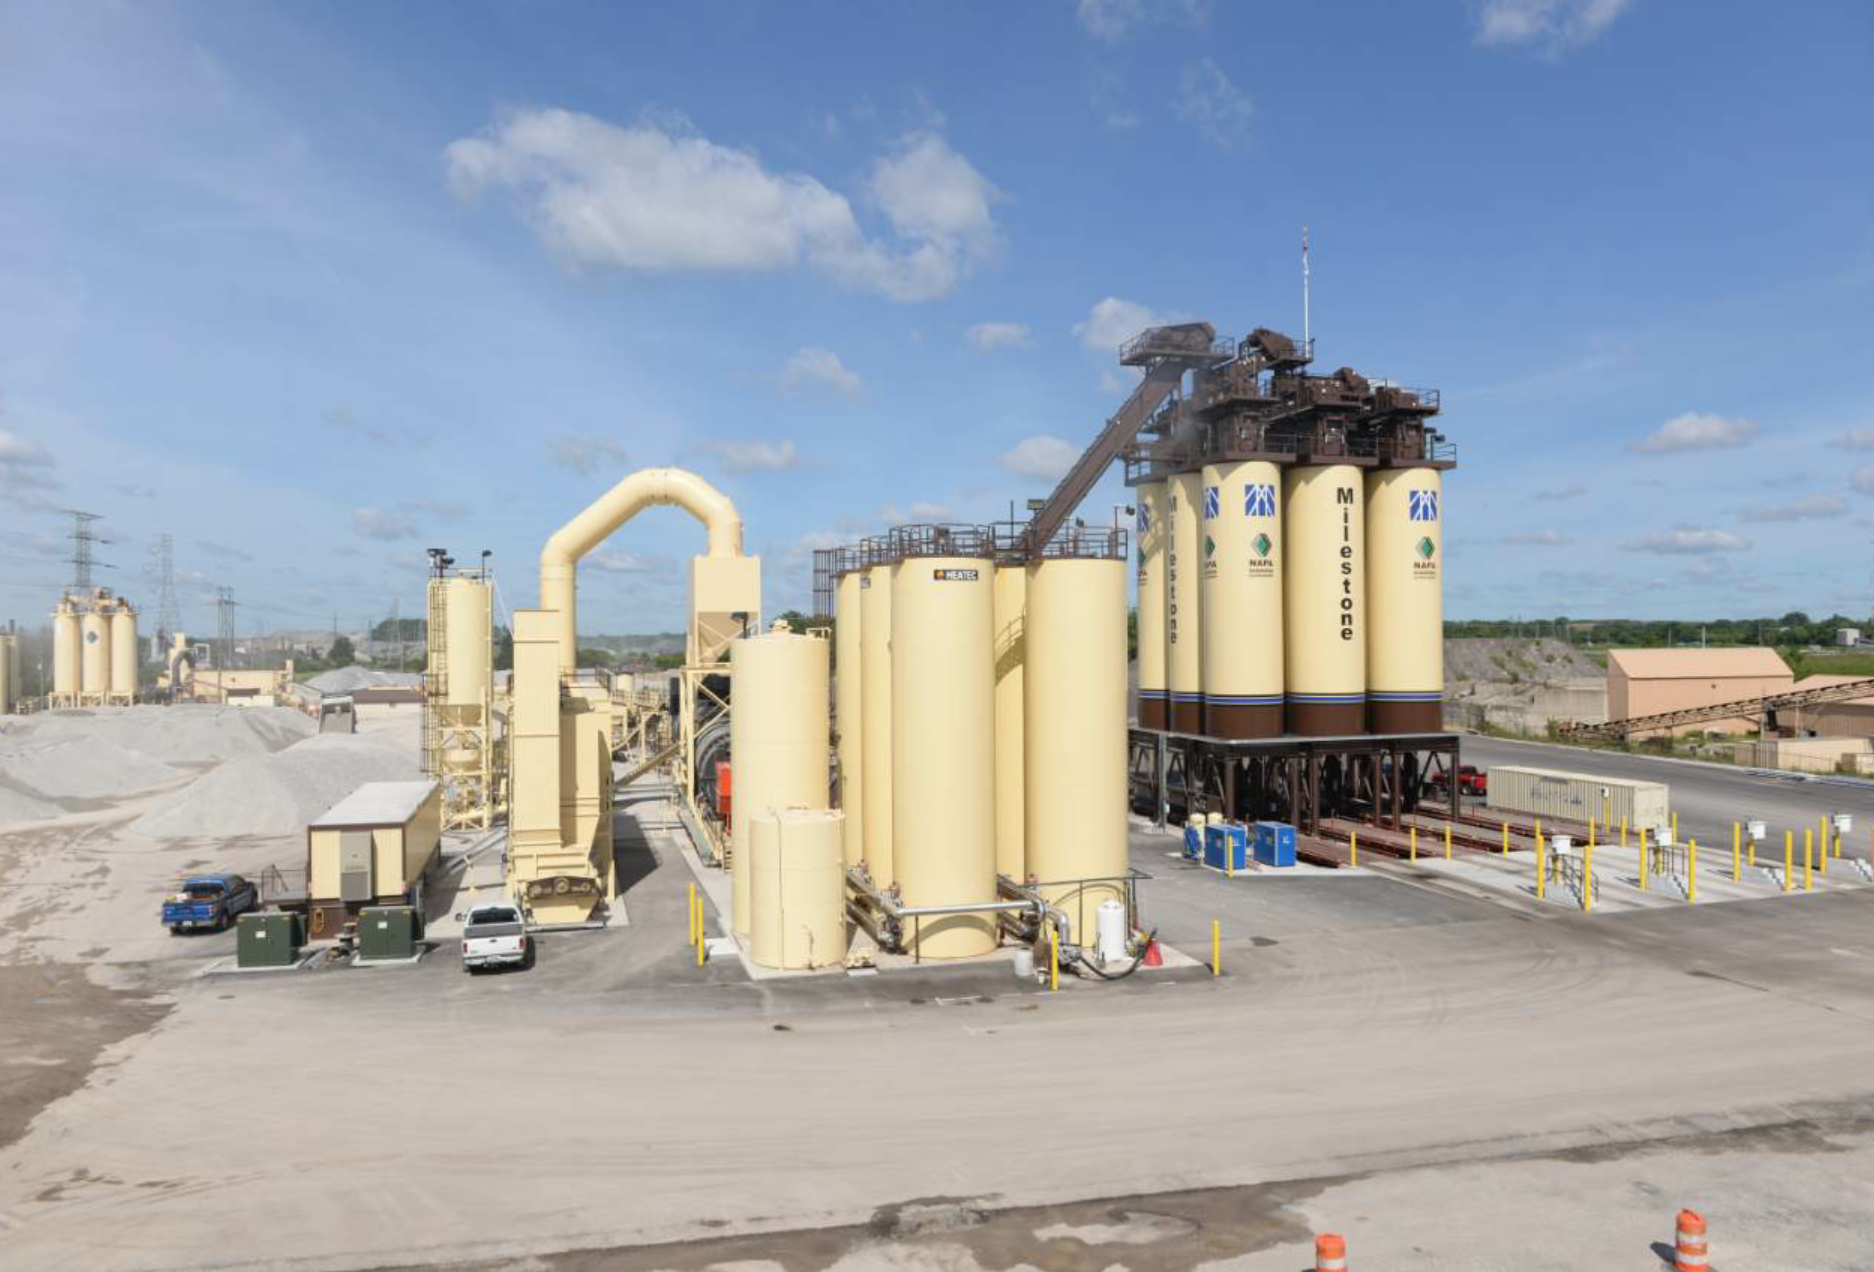 Given the enormous production rates expected from Milestone's customers, the company chose the long-term, four-day storage silos in a 3-by-3 setup. The Milestone team even repositioned the entrance, loading and exit points, enhancing traffic flow for customers and driver safety.